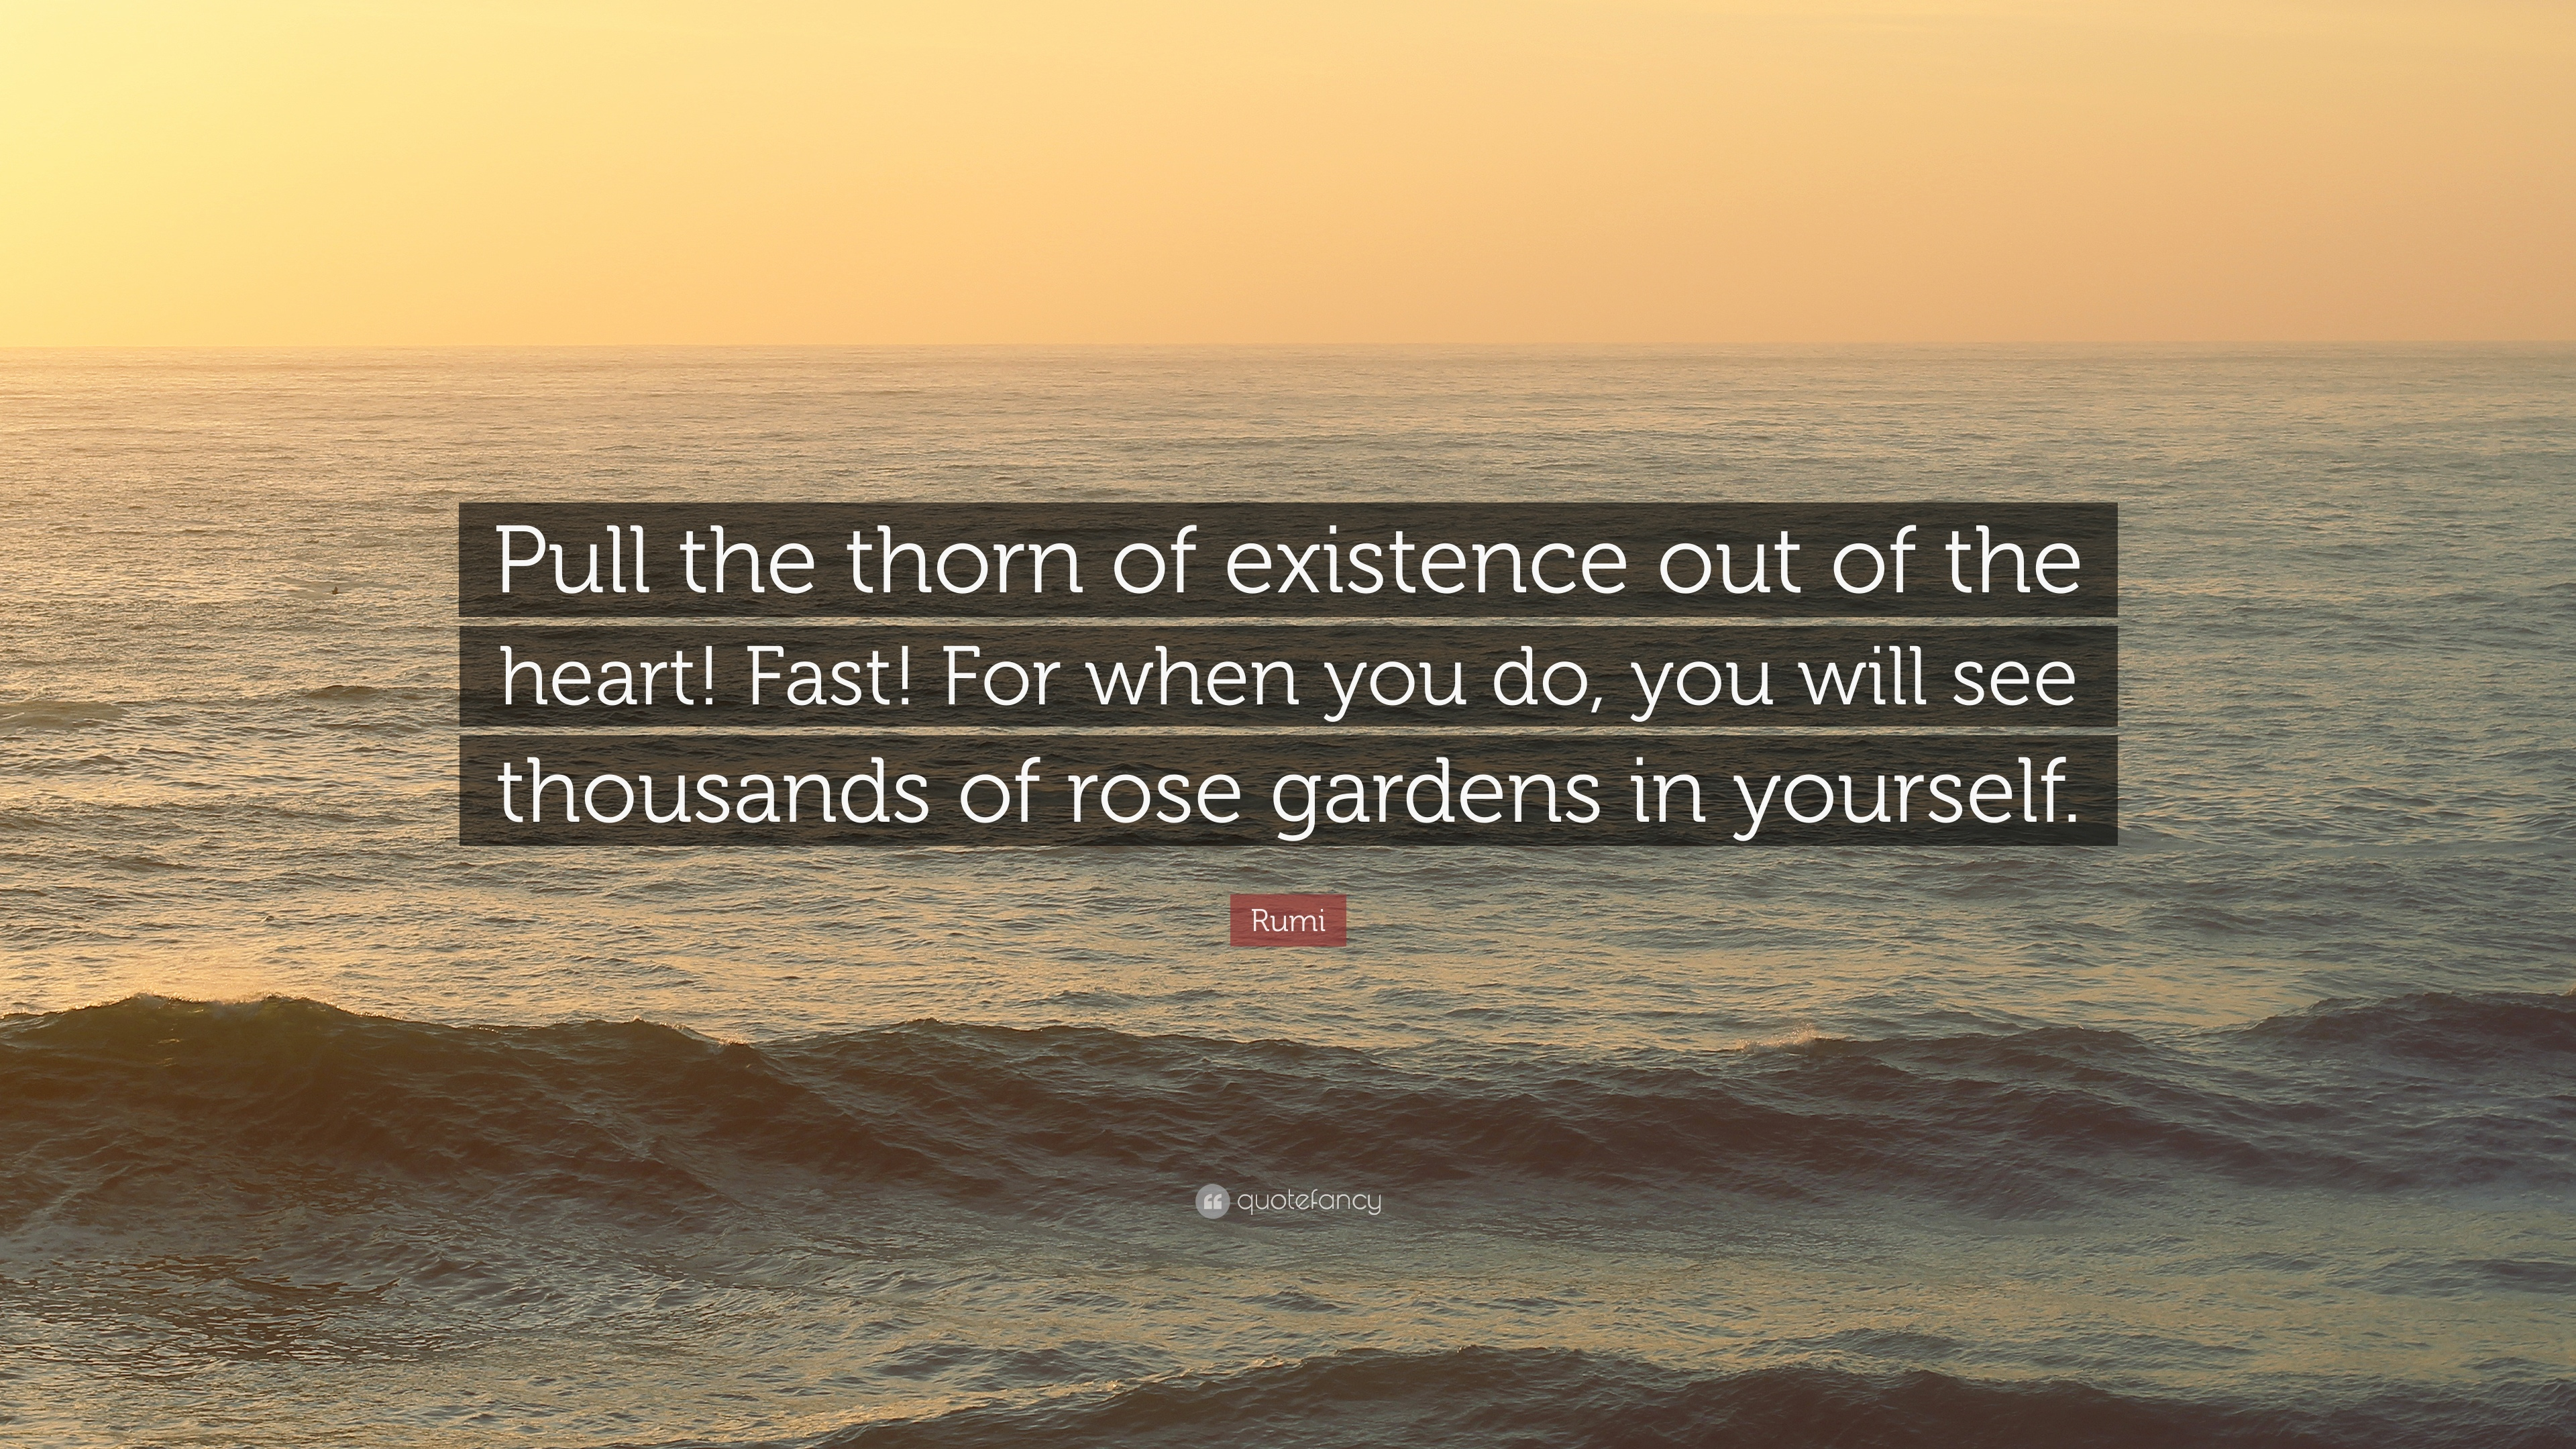 Rumi Quote Pull The Thorn Of Existence Out Of The Heart Fast For